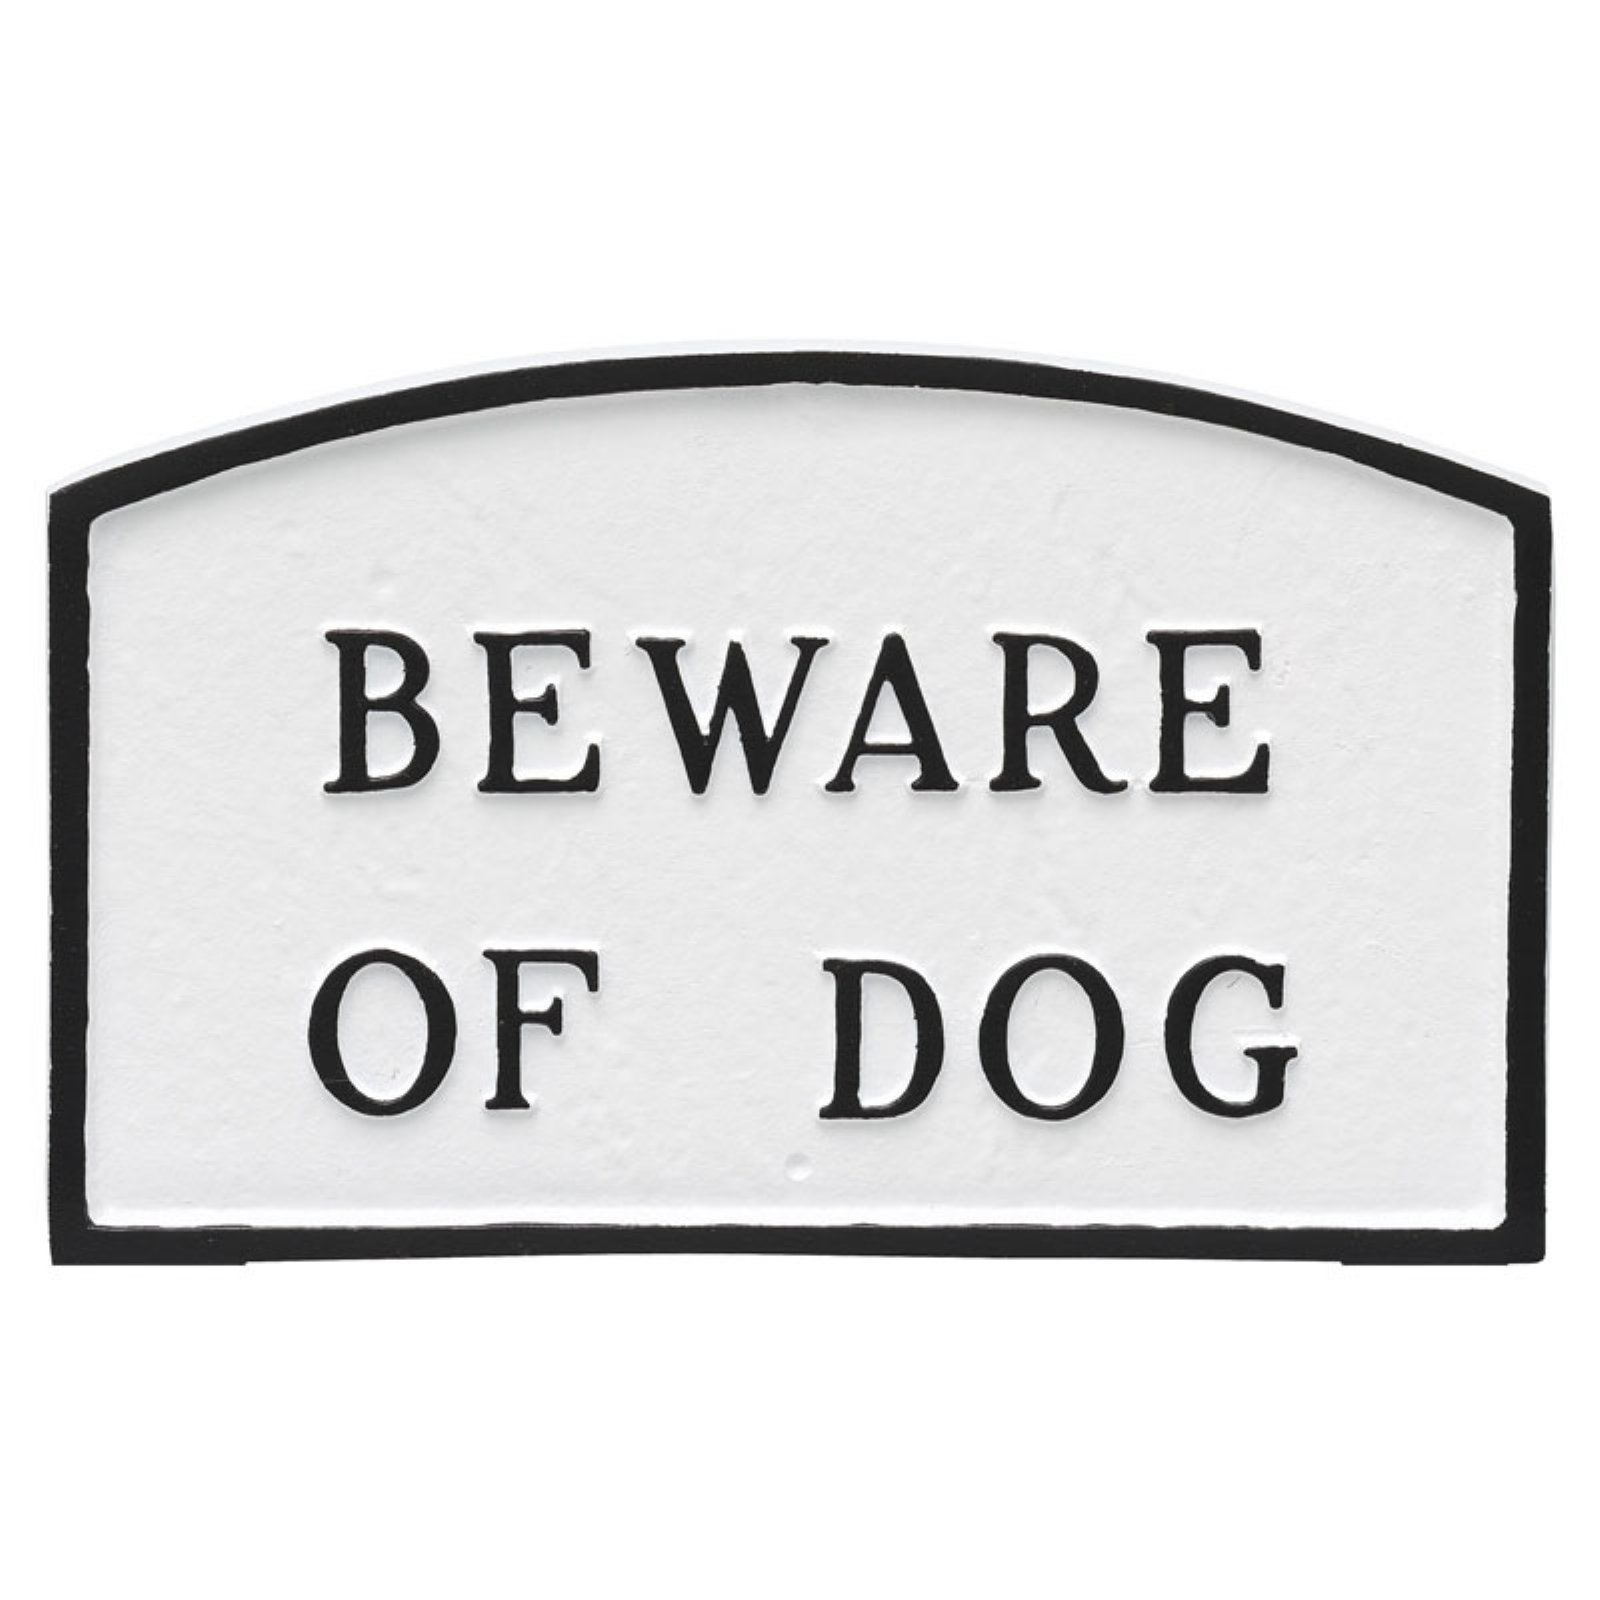 Montague Metal Products Beware of Dog Arched Wall Plaque